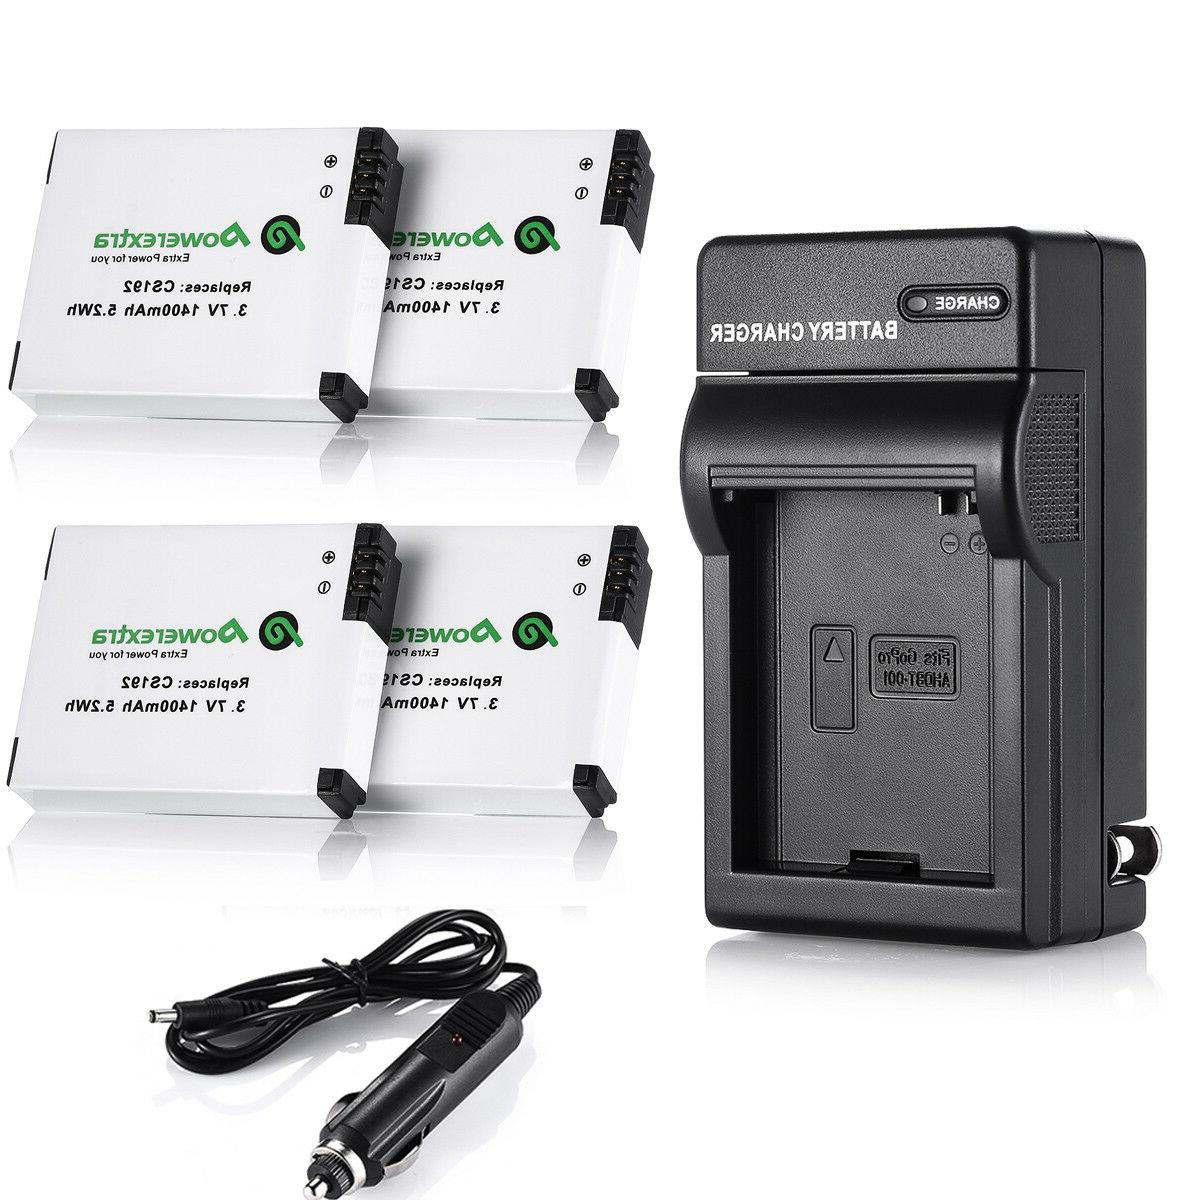 AHDBT 001 AHDBT 002 Battery Charger For GoPro HD Hero2 Hero